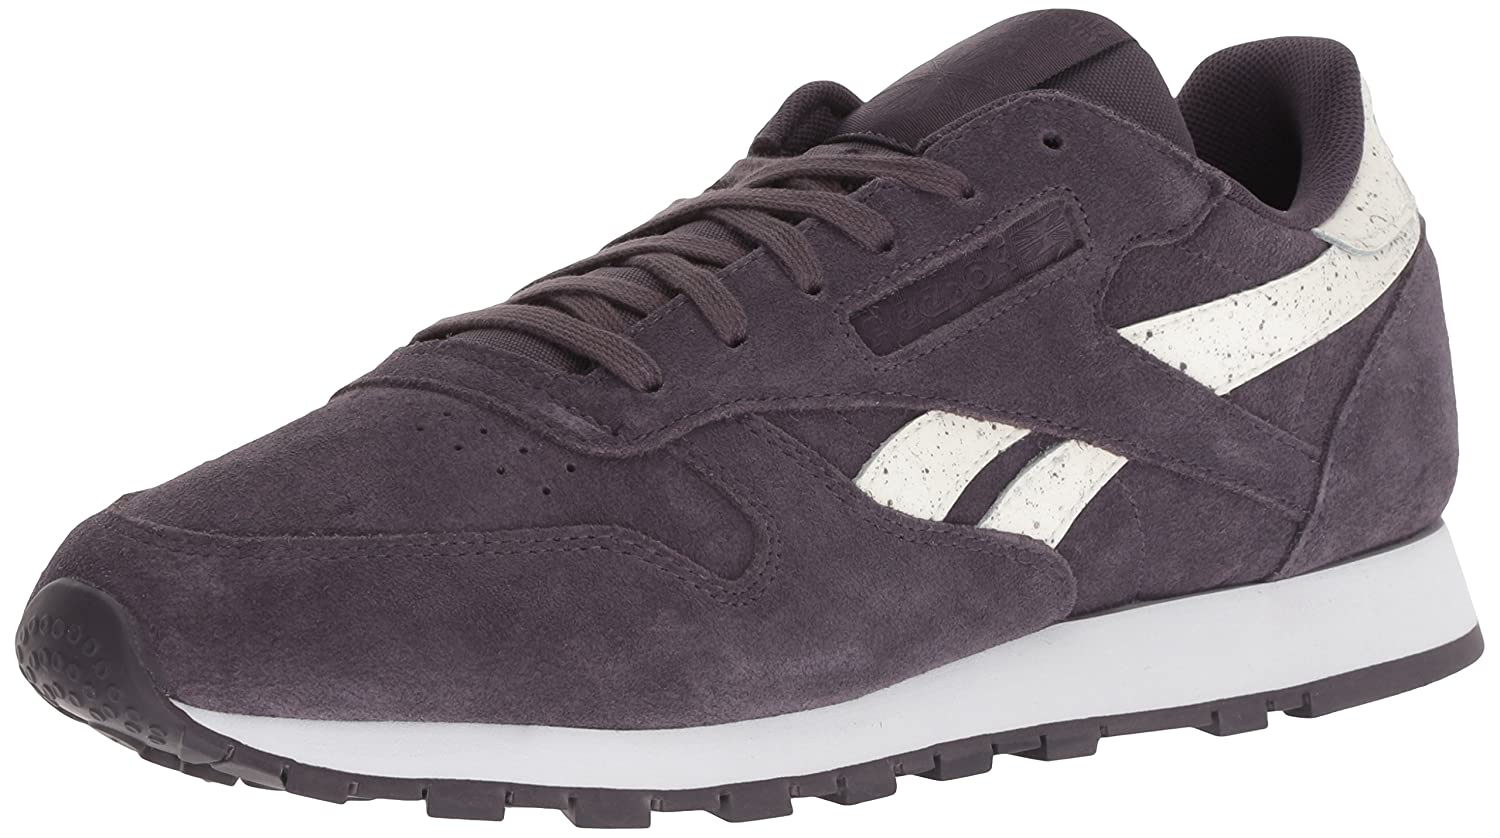 Reebok Women's Classic Leather Sneaker B077ZCCC7V 10 M US|Sidestripes -Smoky Volcan